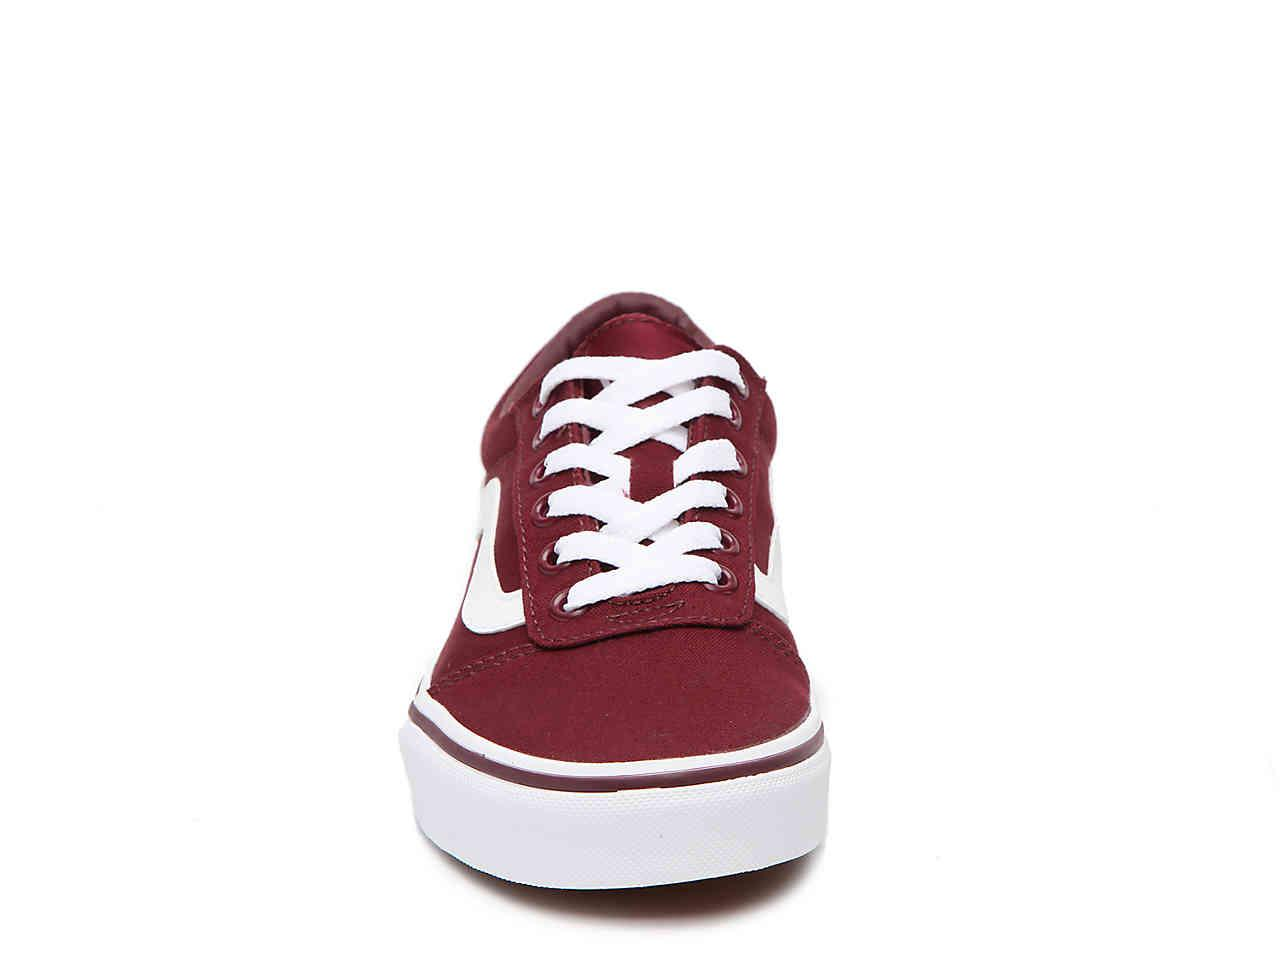 a3aae3bdd75 Lyst - Vans Ward Lo Sneaker in Red